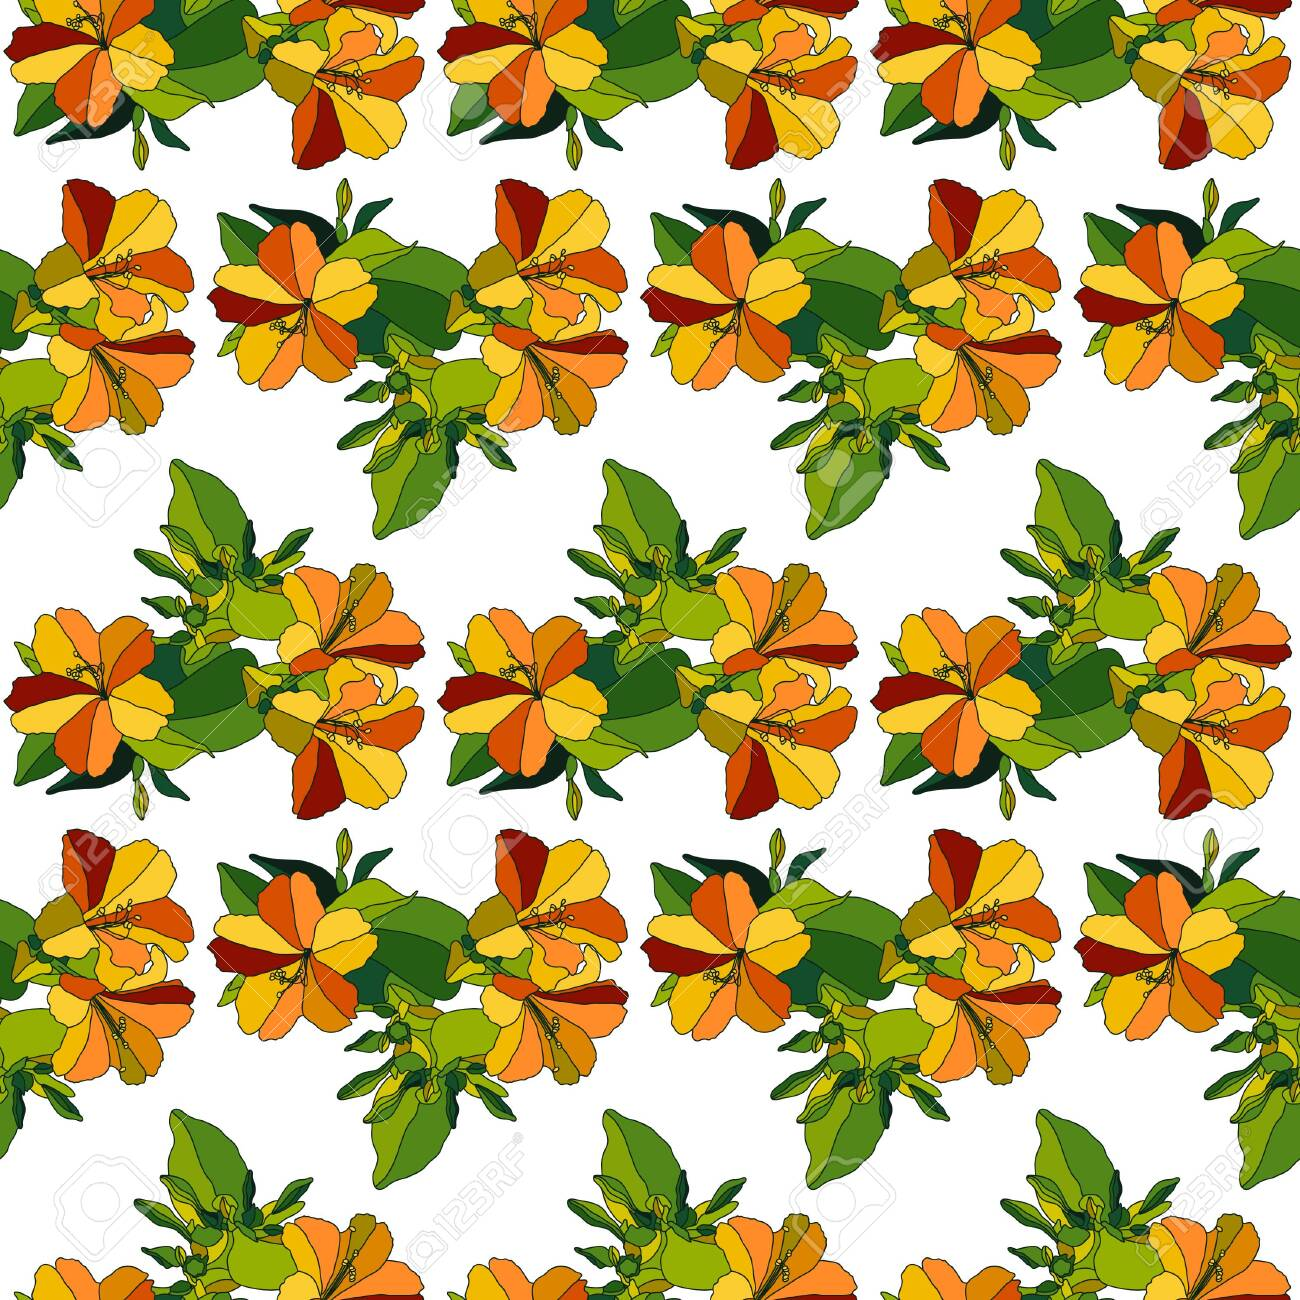 Fall Color Flowers Seamless Vector Pattern Royalty Free Cliparts Vectors And Stock Illustration Image 130656883